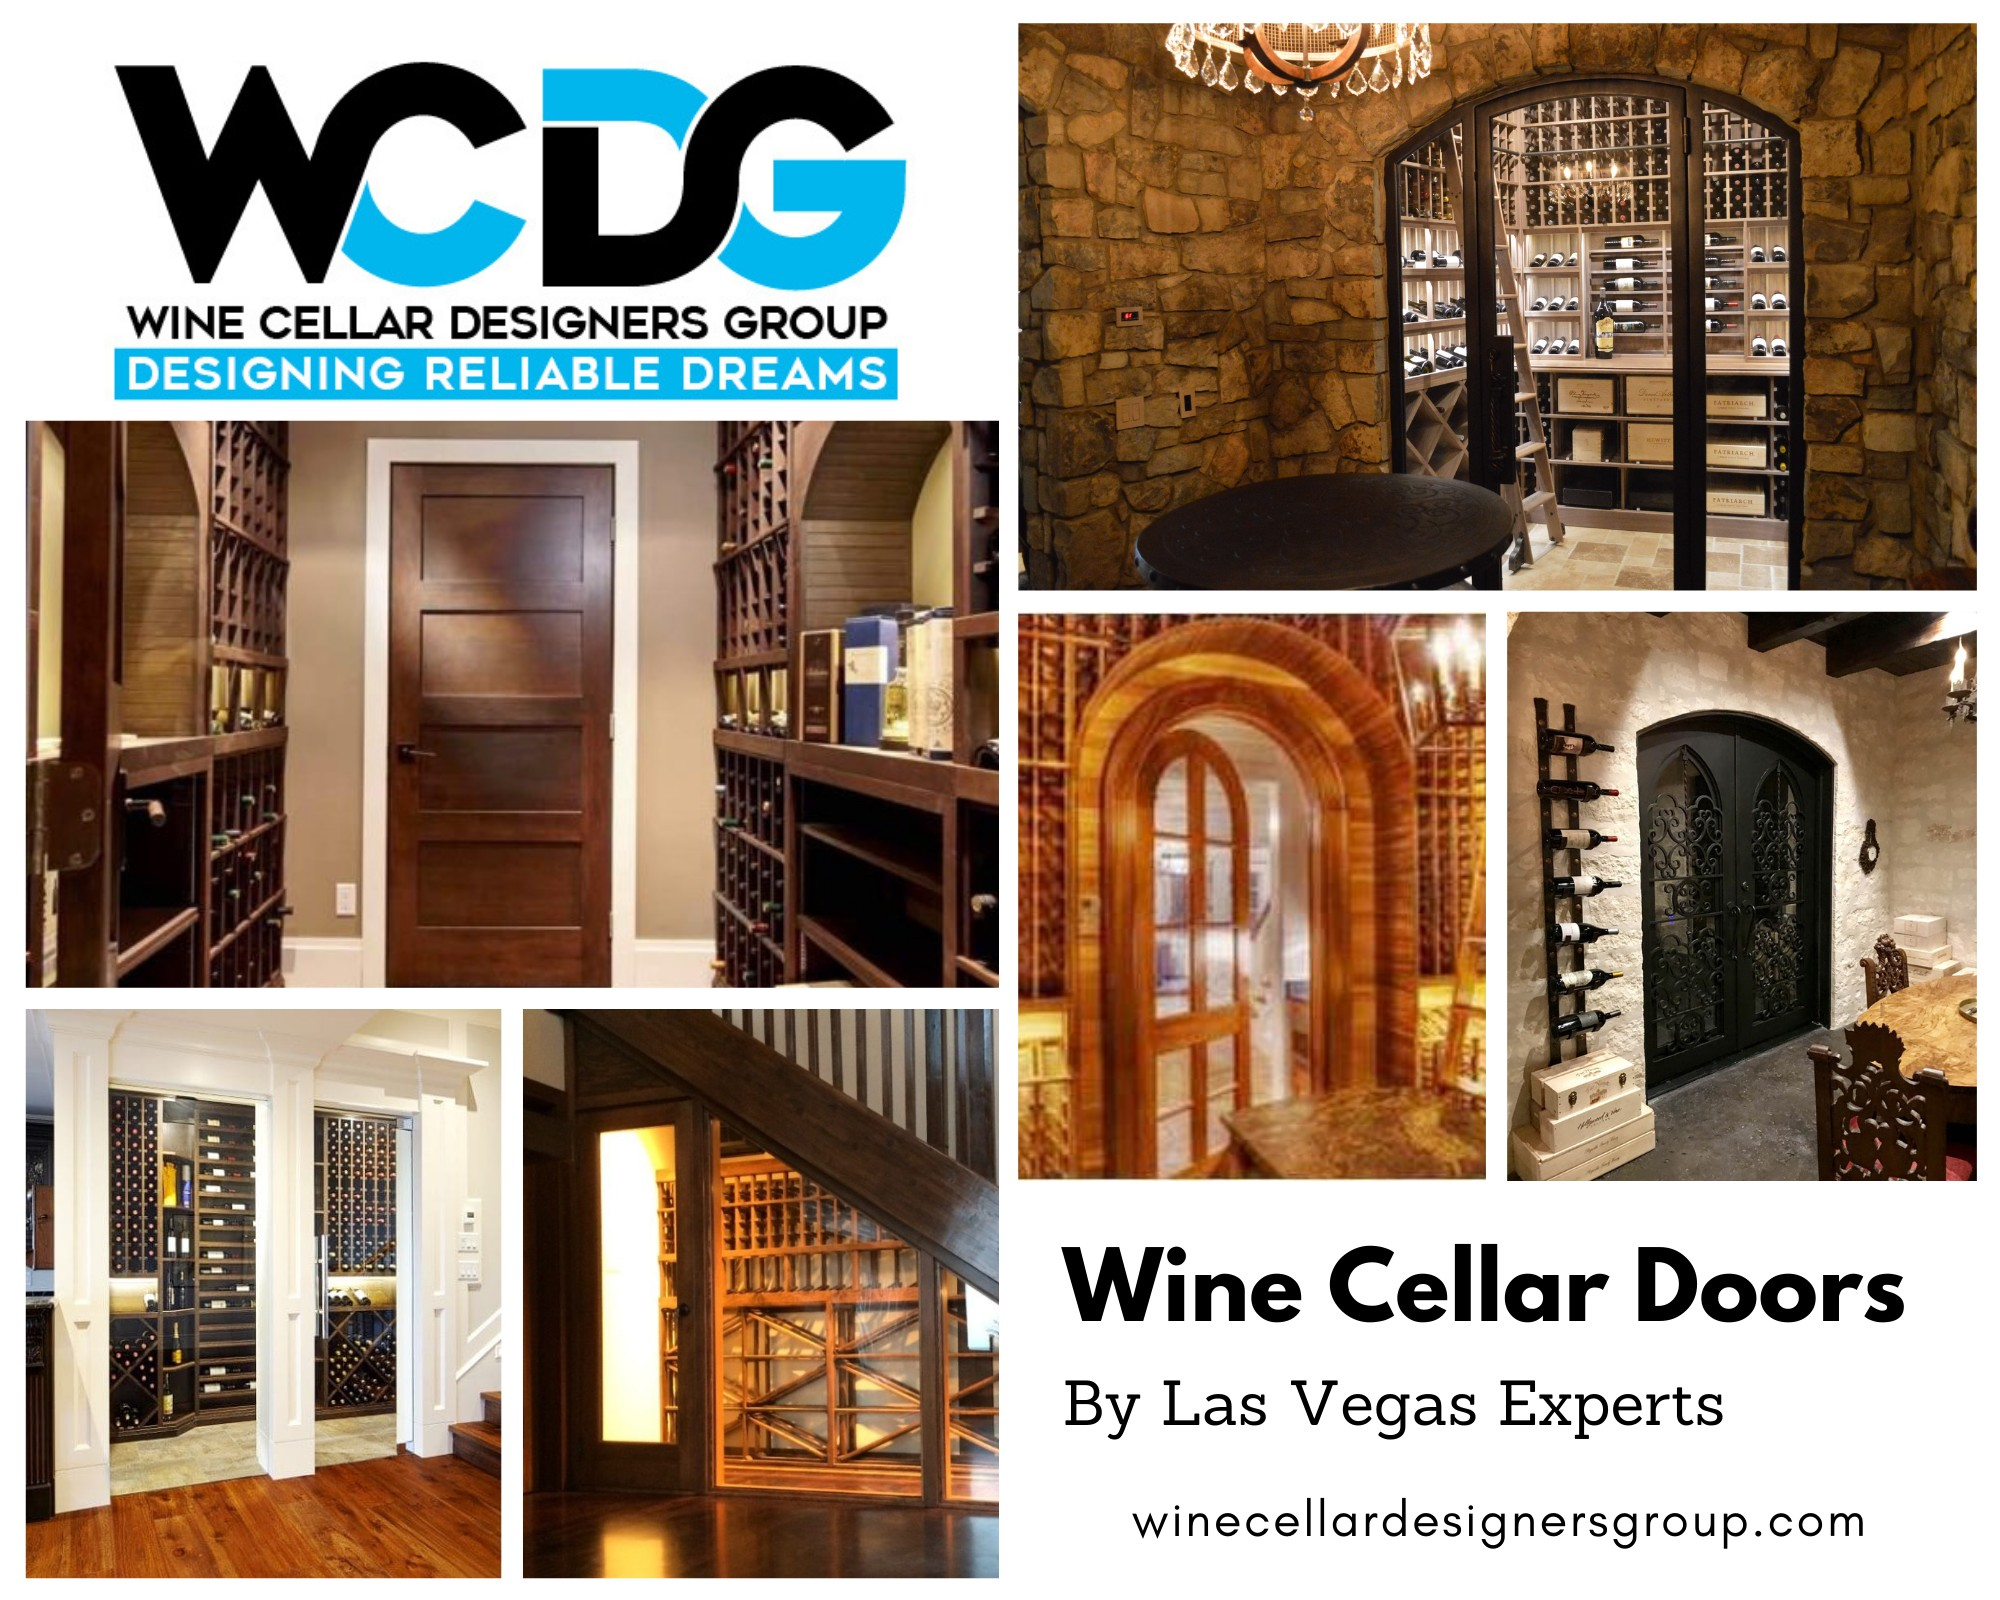 Custom Wine Celllar Doors by Las Vegas Experts